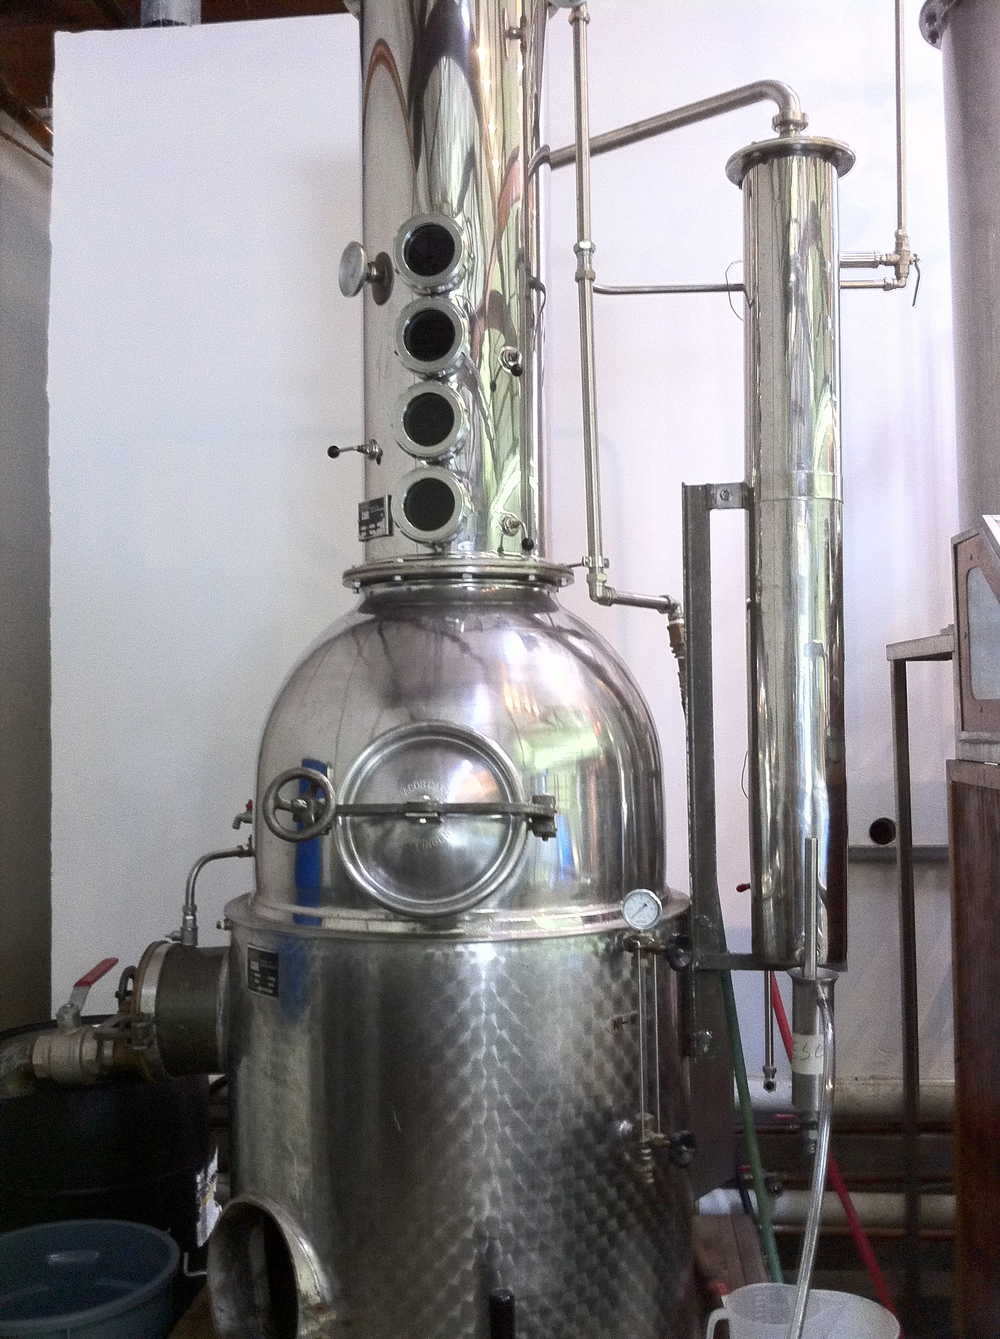 40 gallon Jacob Carl Stainless Steel/Copper bottom Column Pot Still